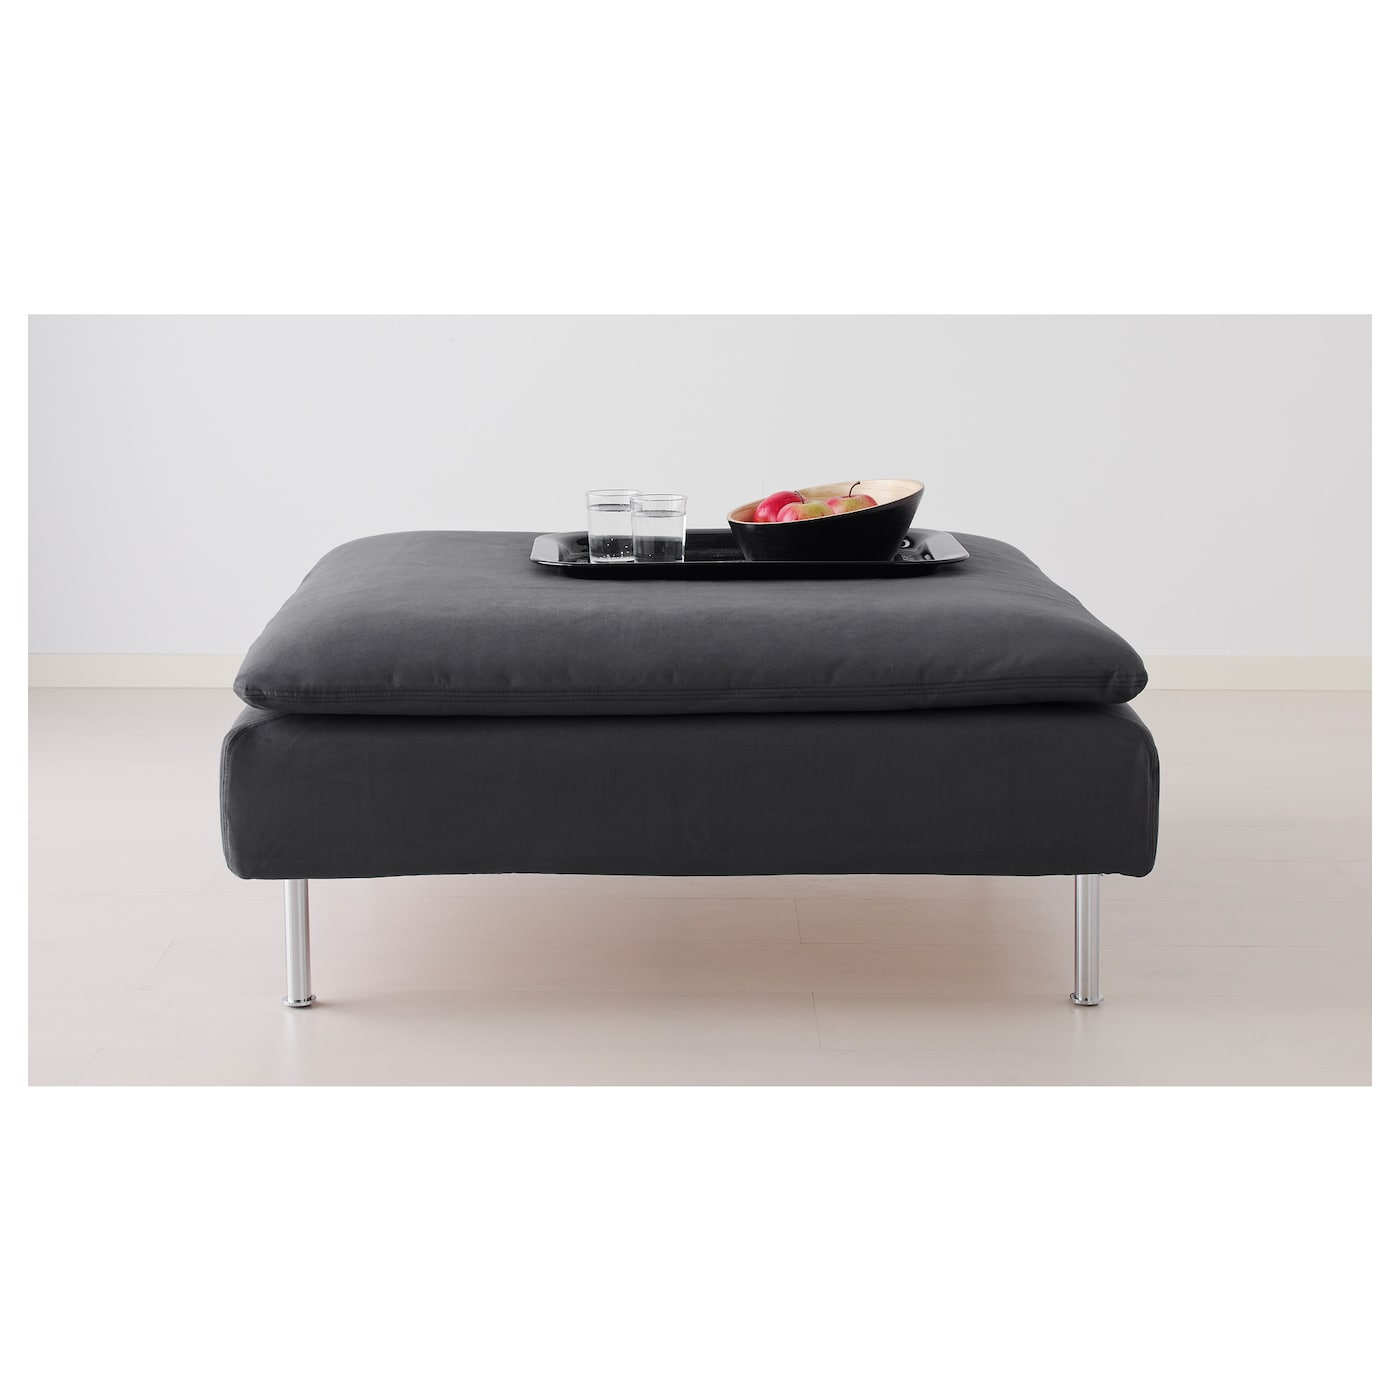 IKEA SÖDERHAMN footstool Hardwearing microfibre which is soft and smooth.